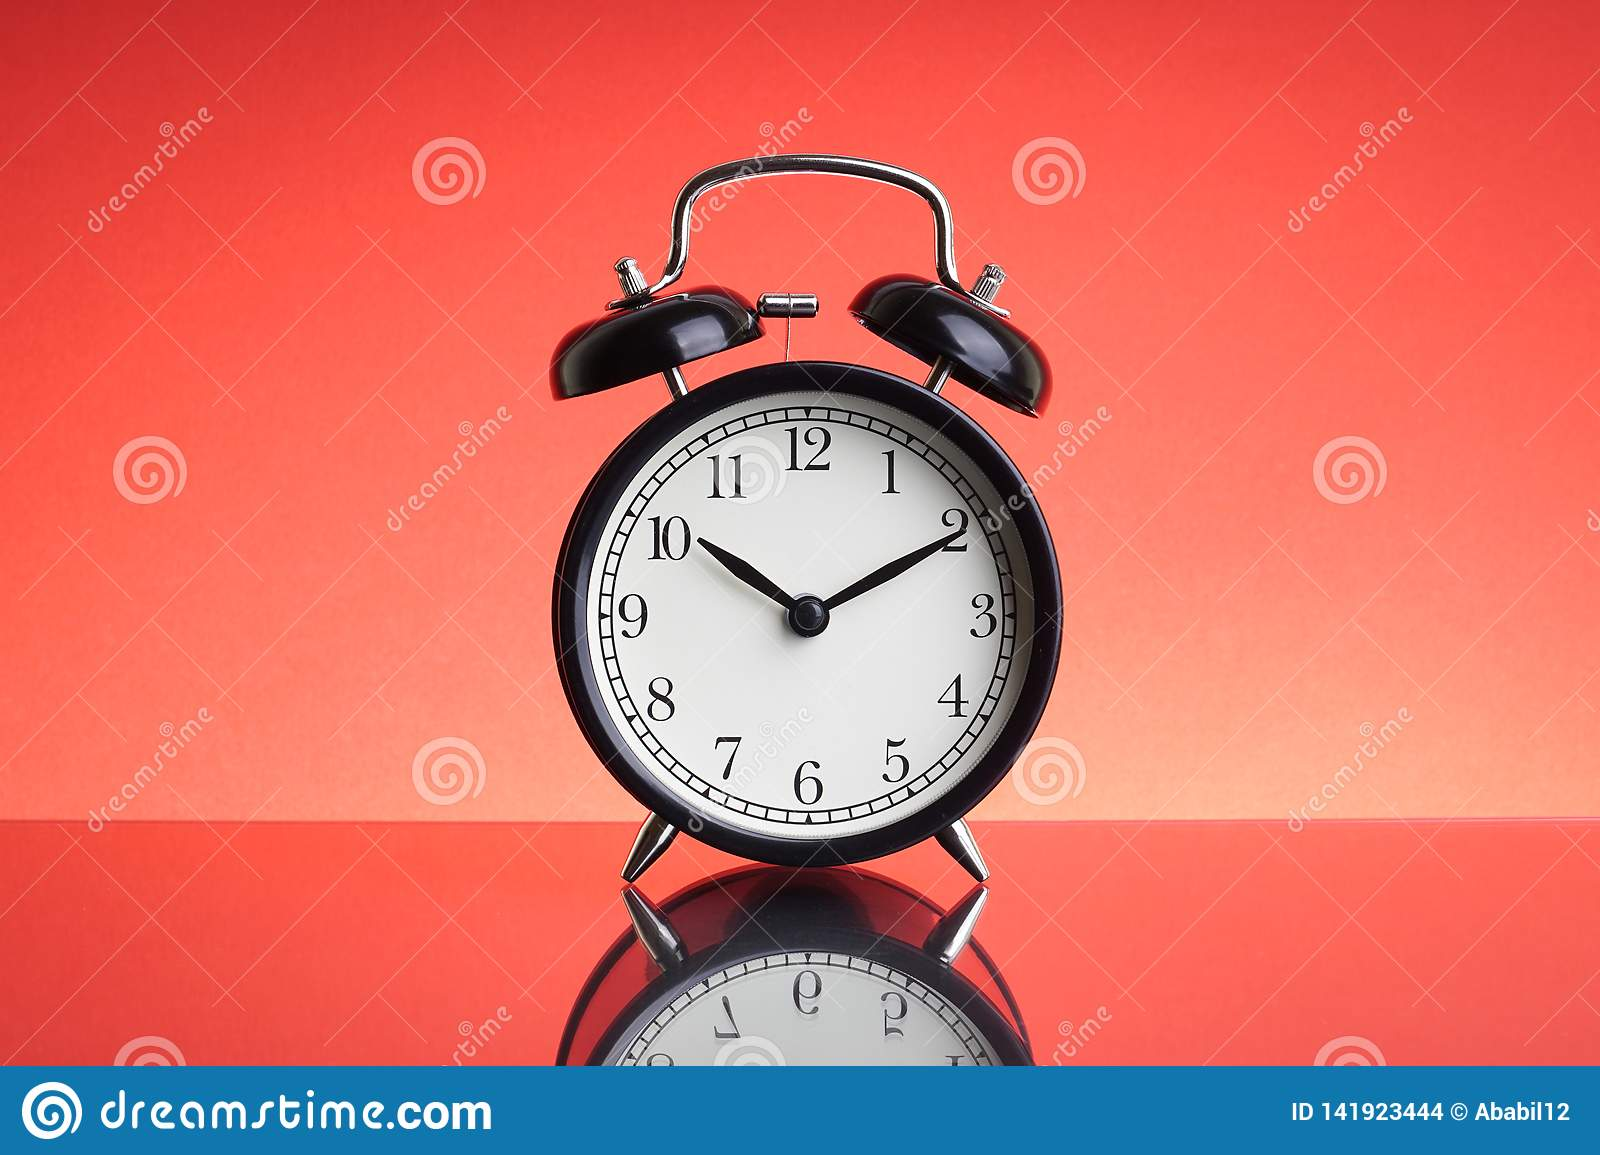 Alarm Clock on red background with selective focus and crop fragment